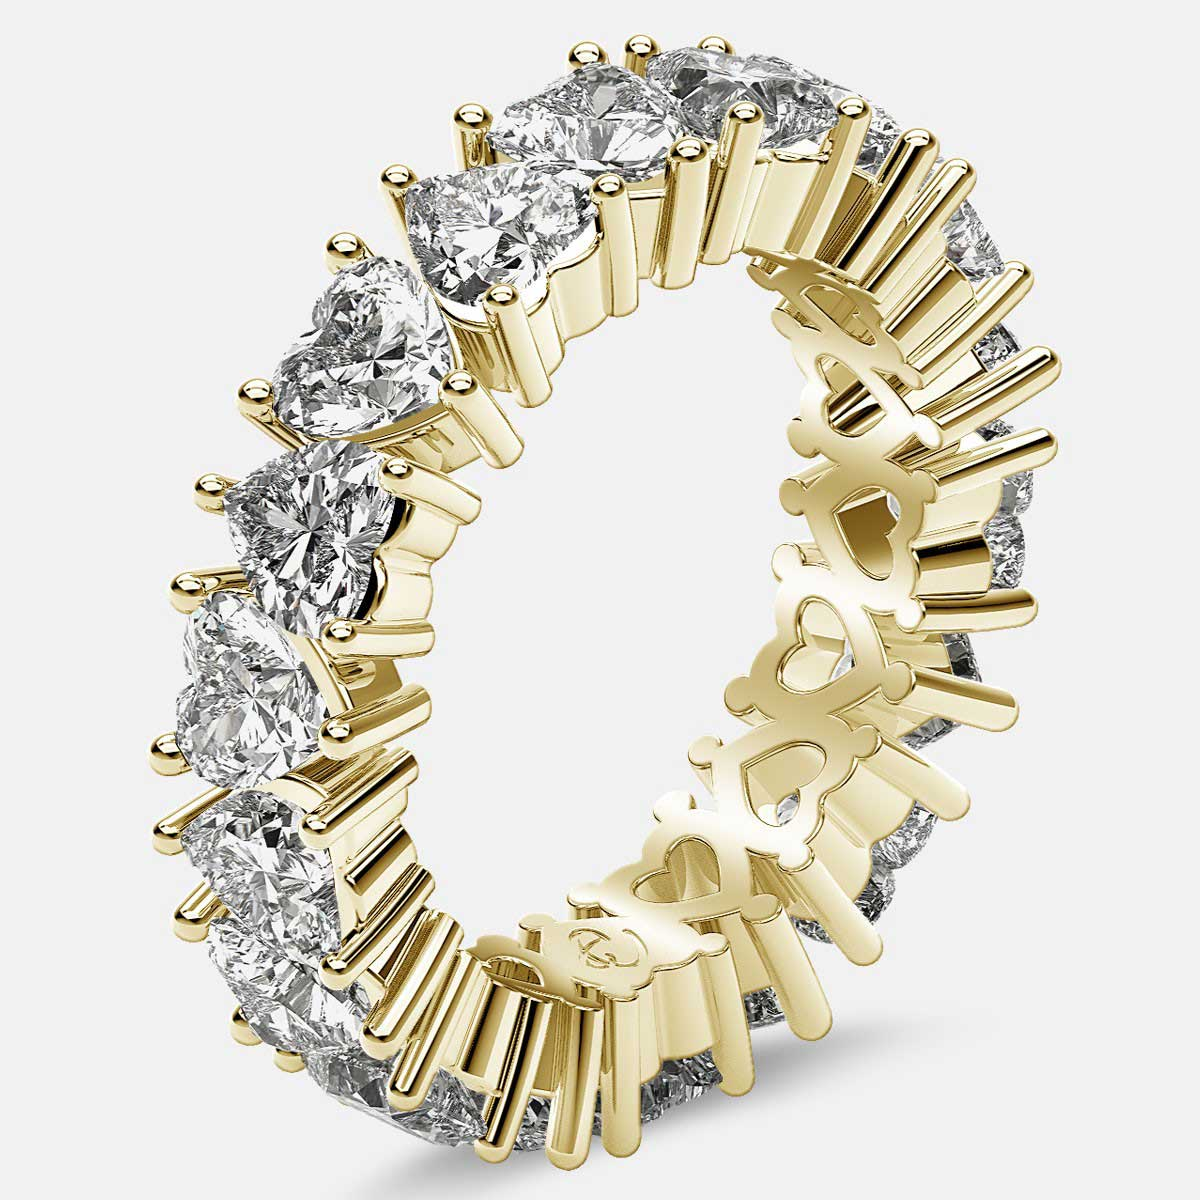 Prong Set Eternity Ring with Heart Shaped Diamonds in 18k Yellow Gold